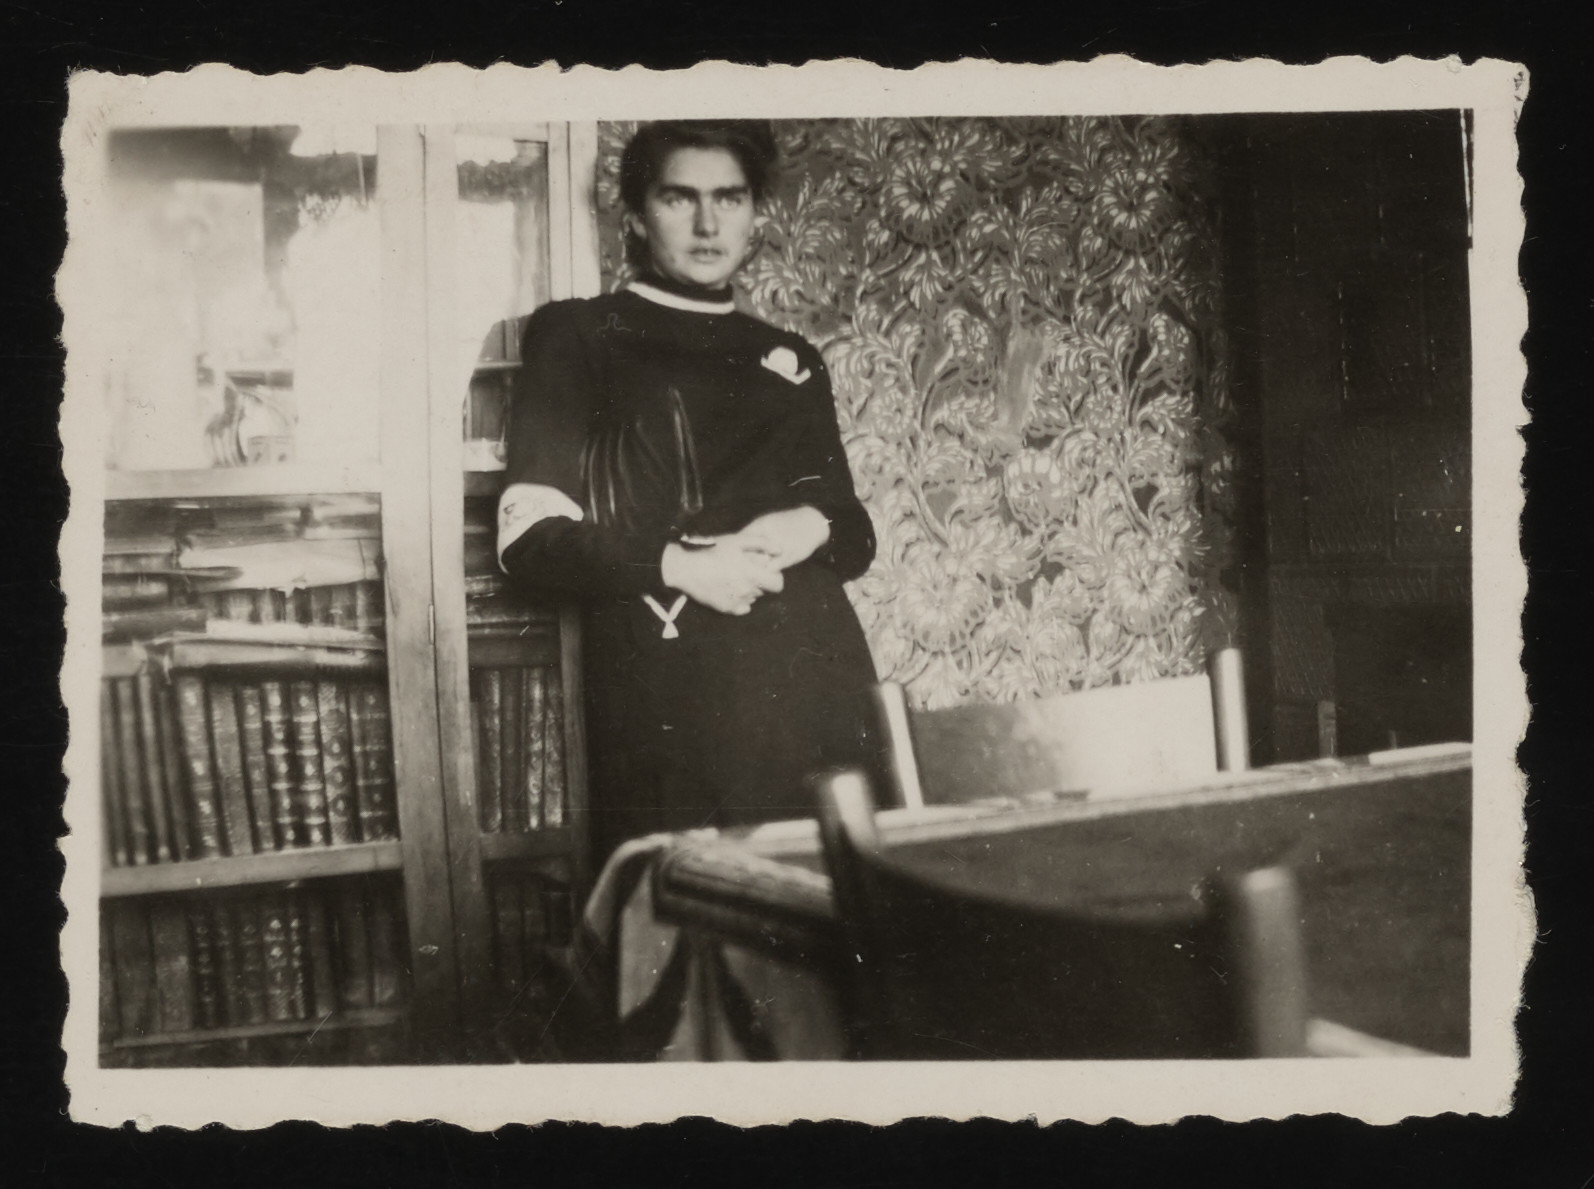 Rachel Saleschütz stands in front of a bookcase in her apartment in the Kolbuszowa ghetto.